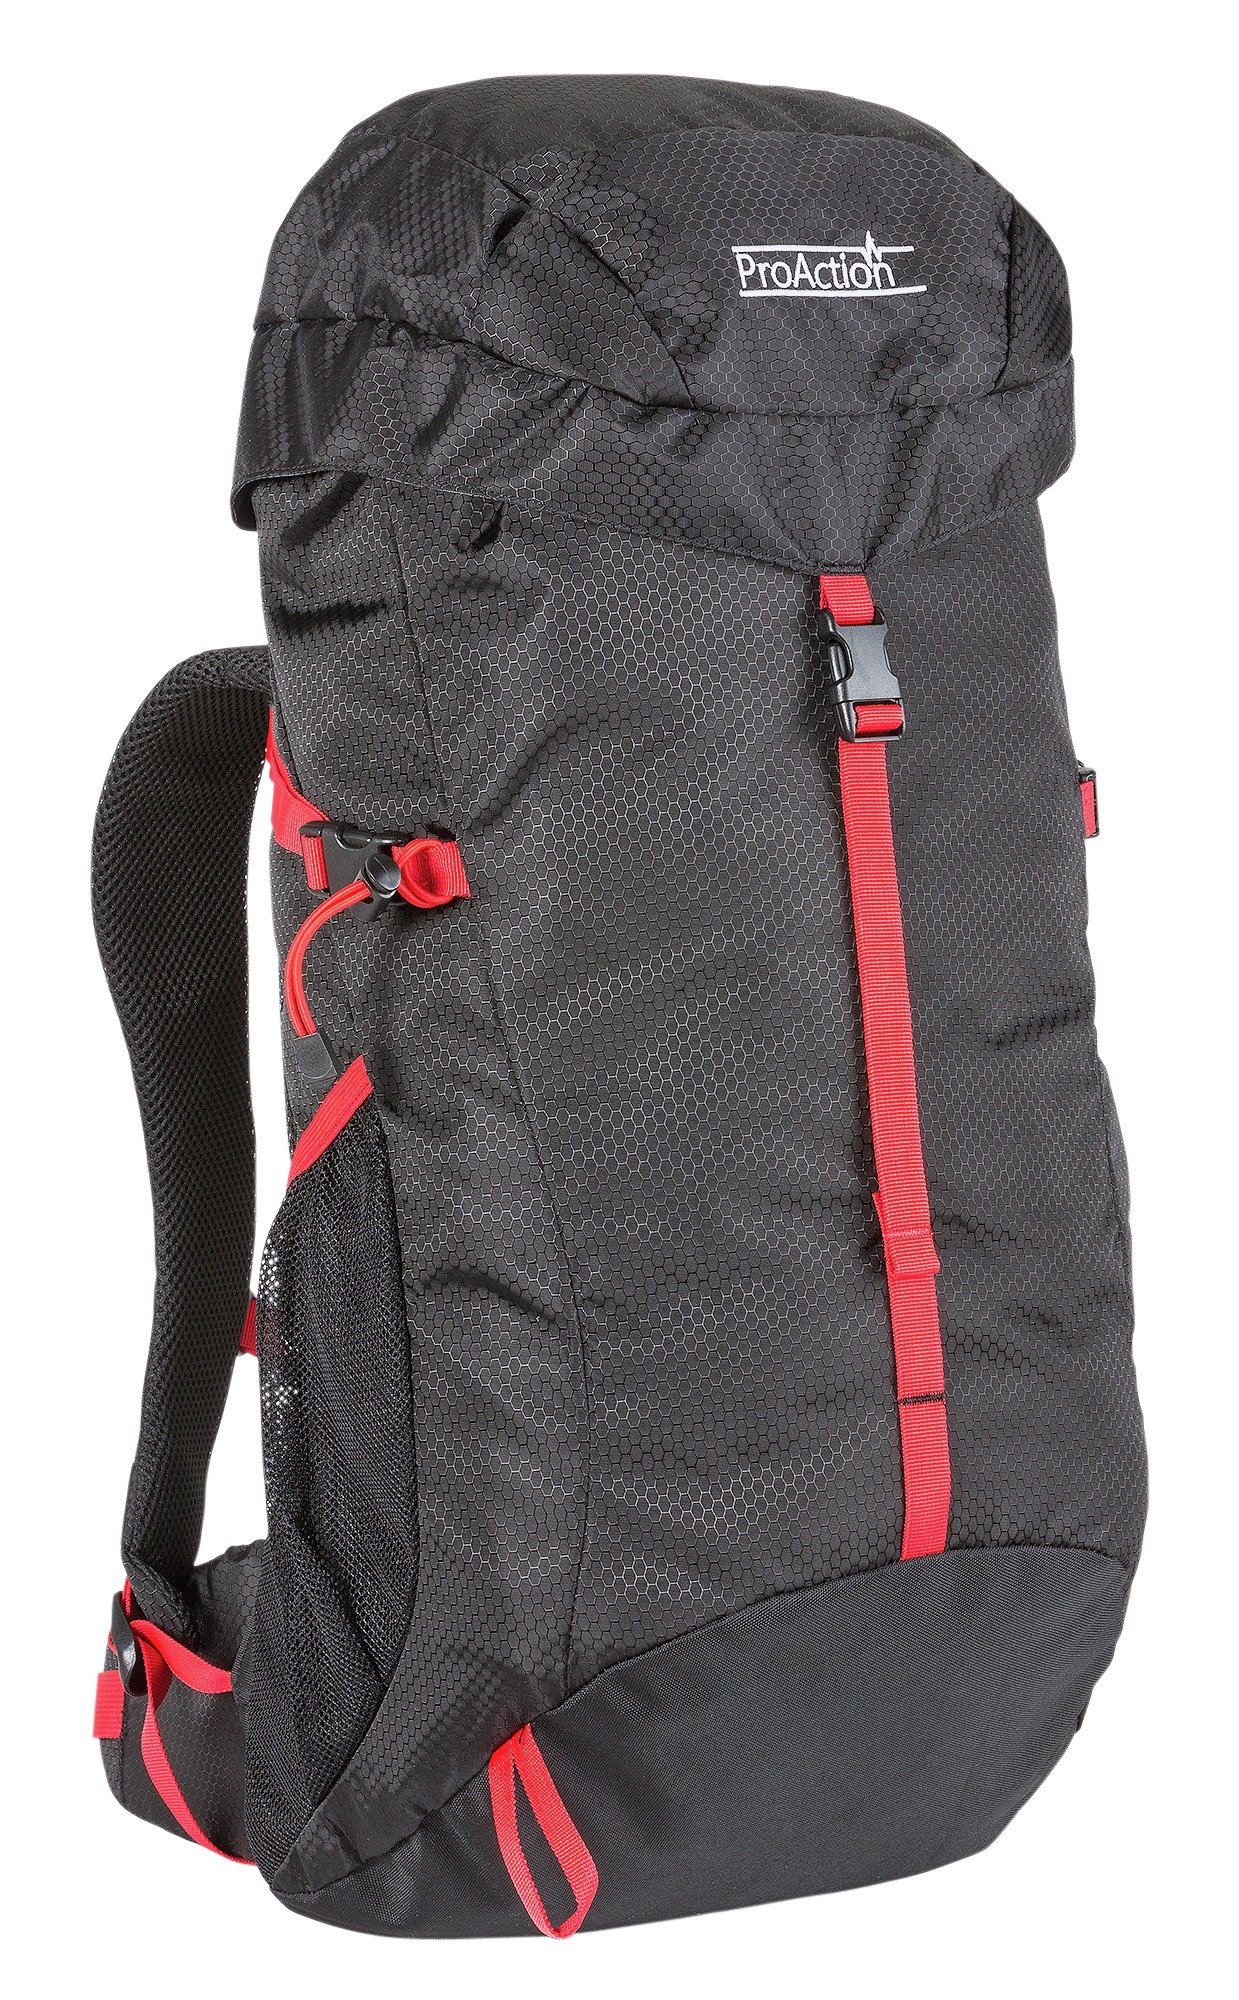 ProAction 35L Backpack - Black and Red